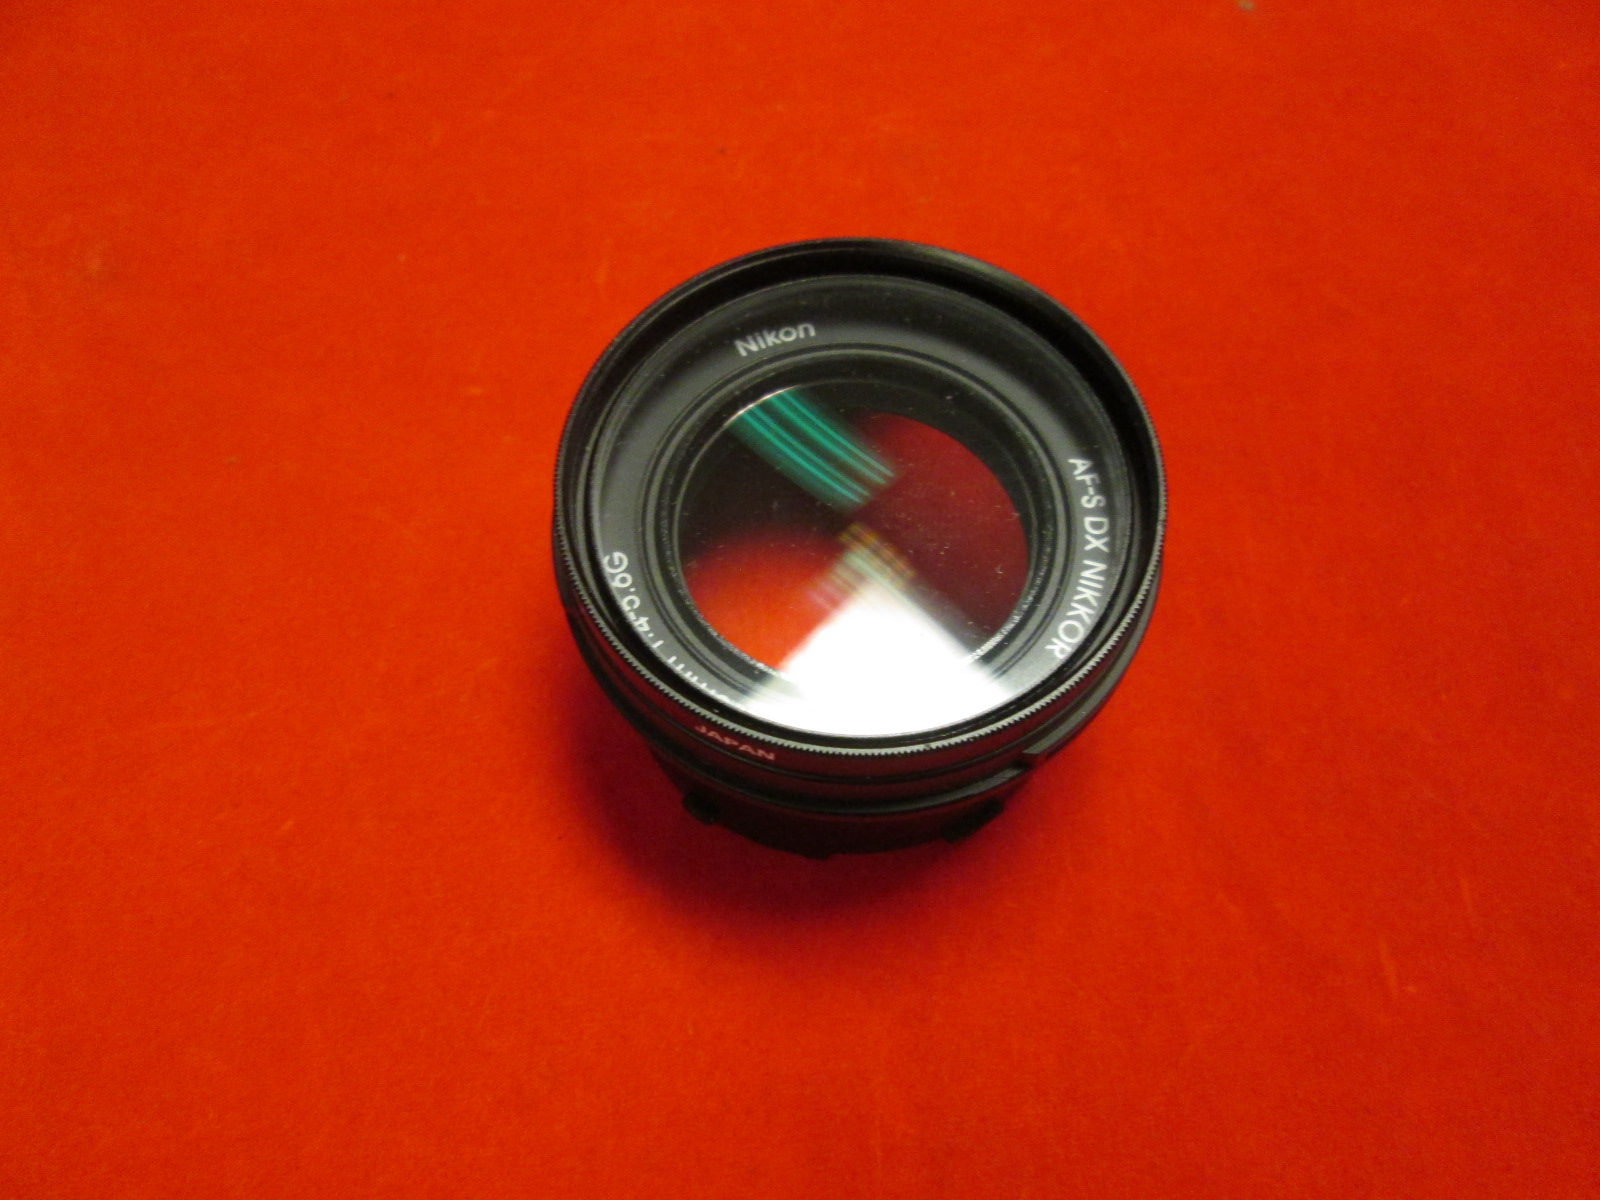 Replacement Lens Piece For Nikon 55-200MM F/4-5.6G Ed If Af-S DX VR